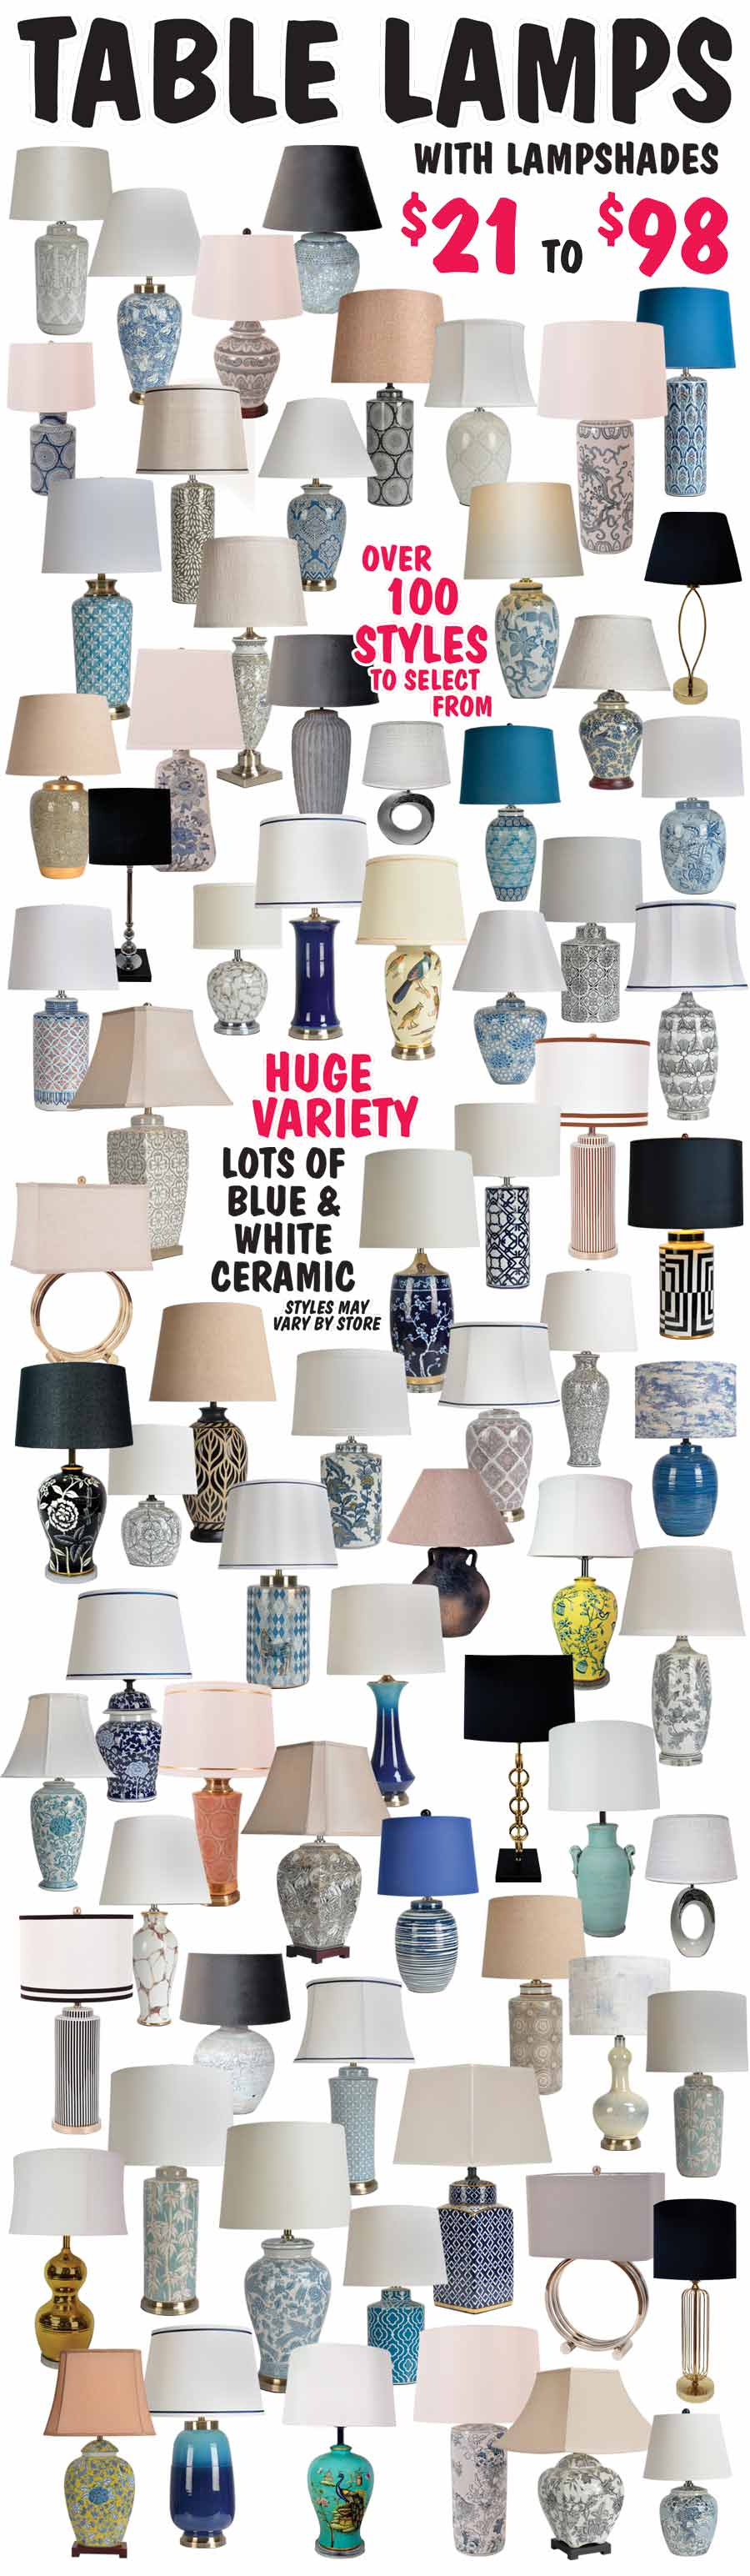 Table Lamps - Over 100 Styles - starting at $21